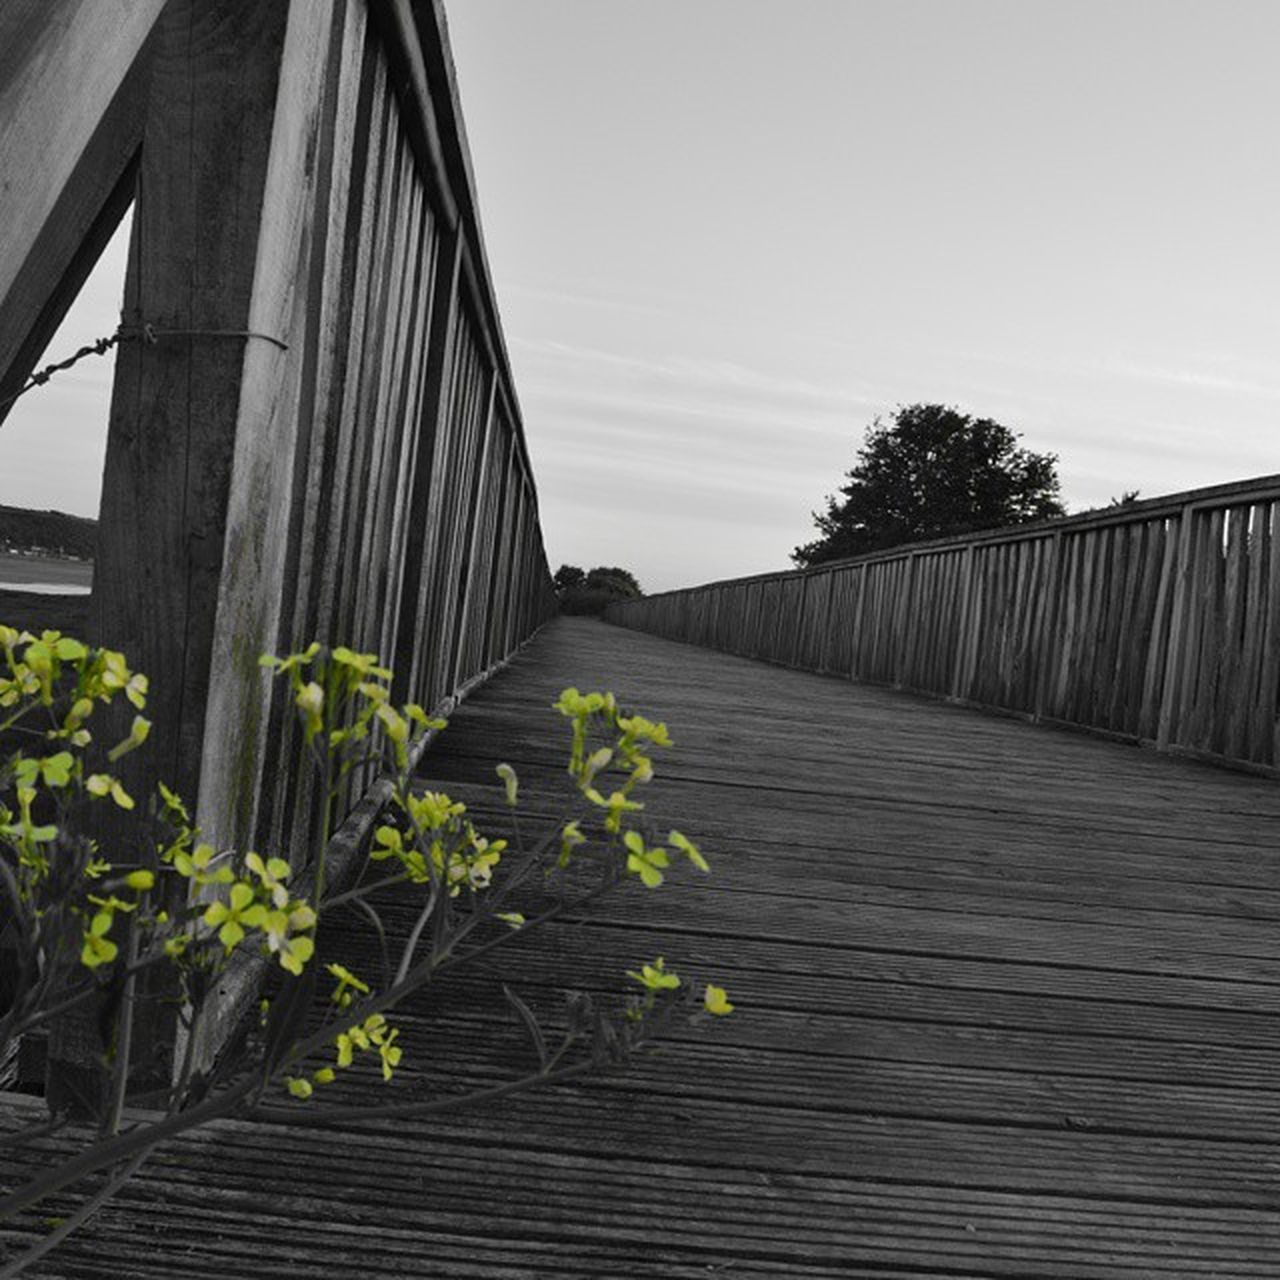 plant, growth, flower, nature, outdoors, built structure, no people, day, architecture, sky